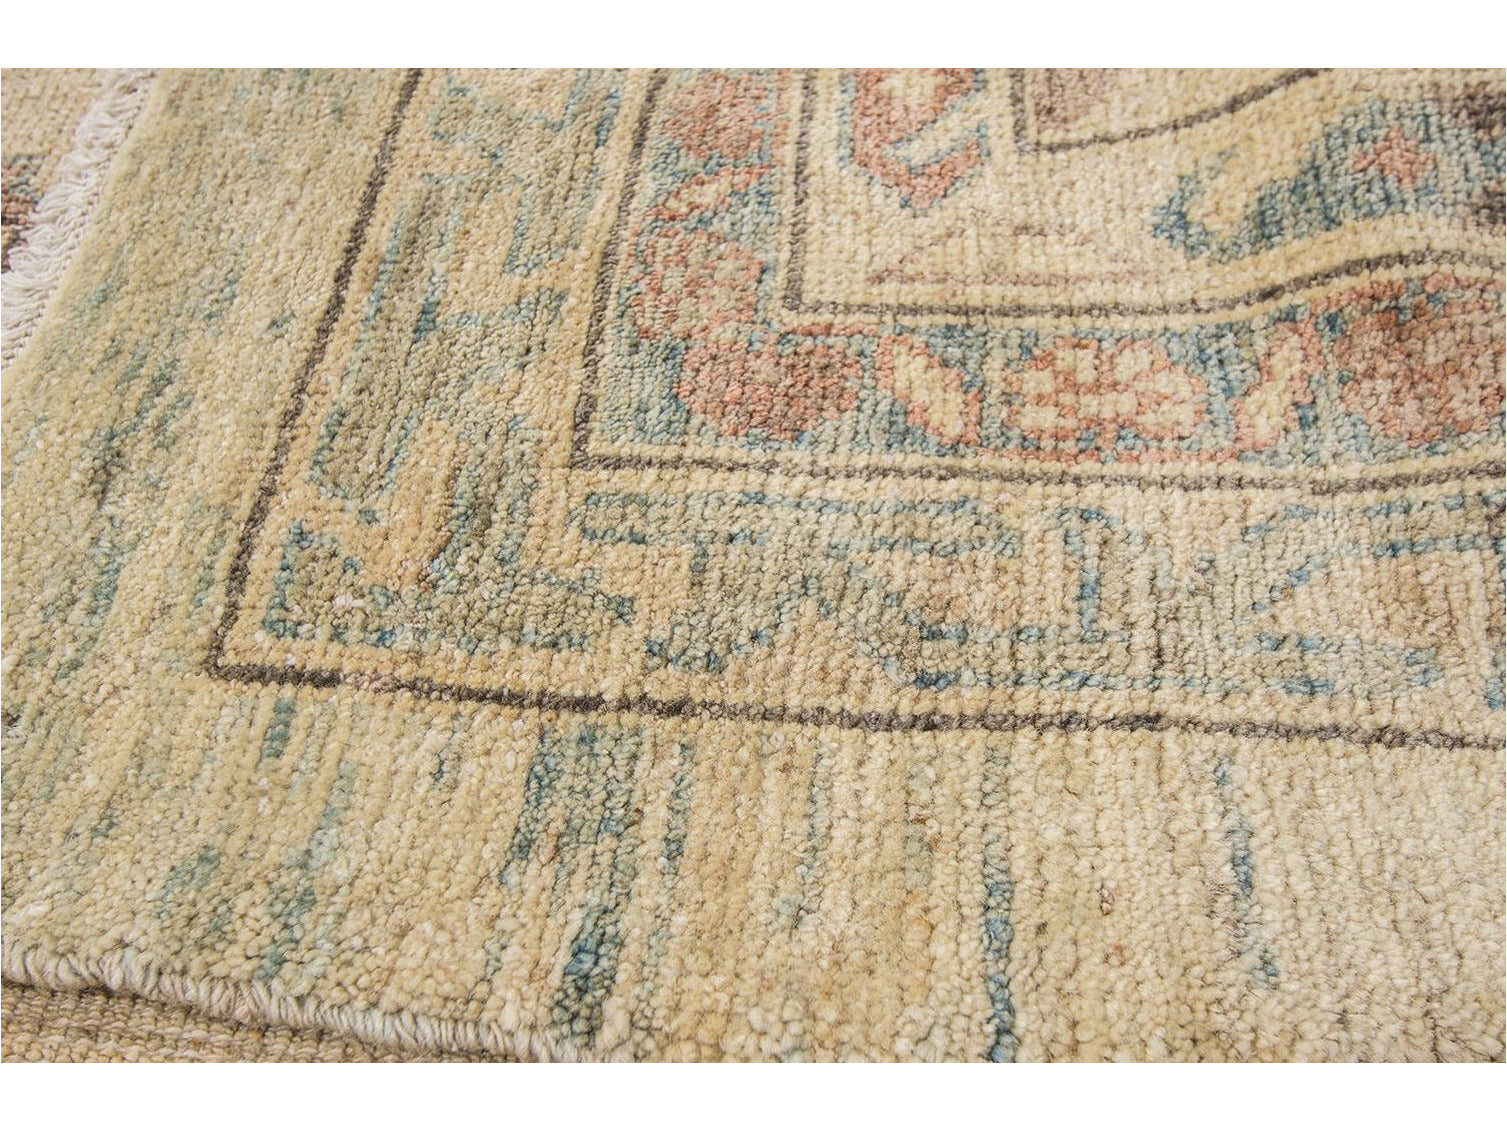 21st Century Contemporary Sultanabad Wool Rug 14 X 20